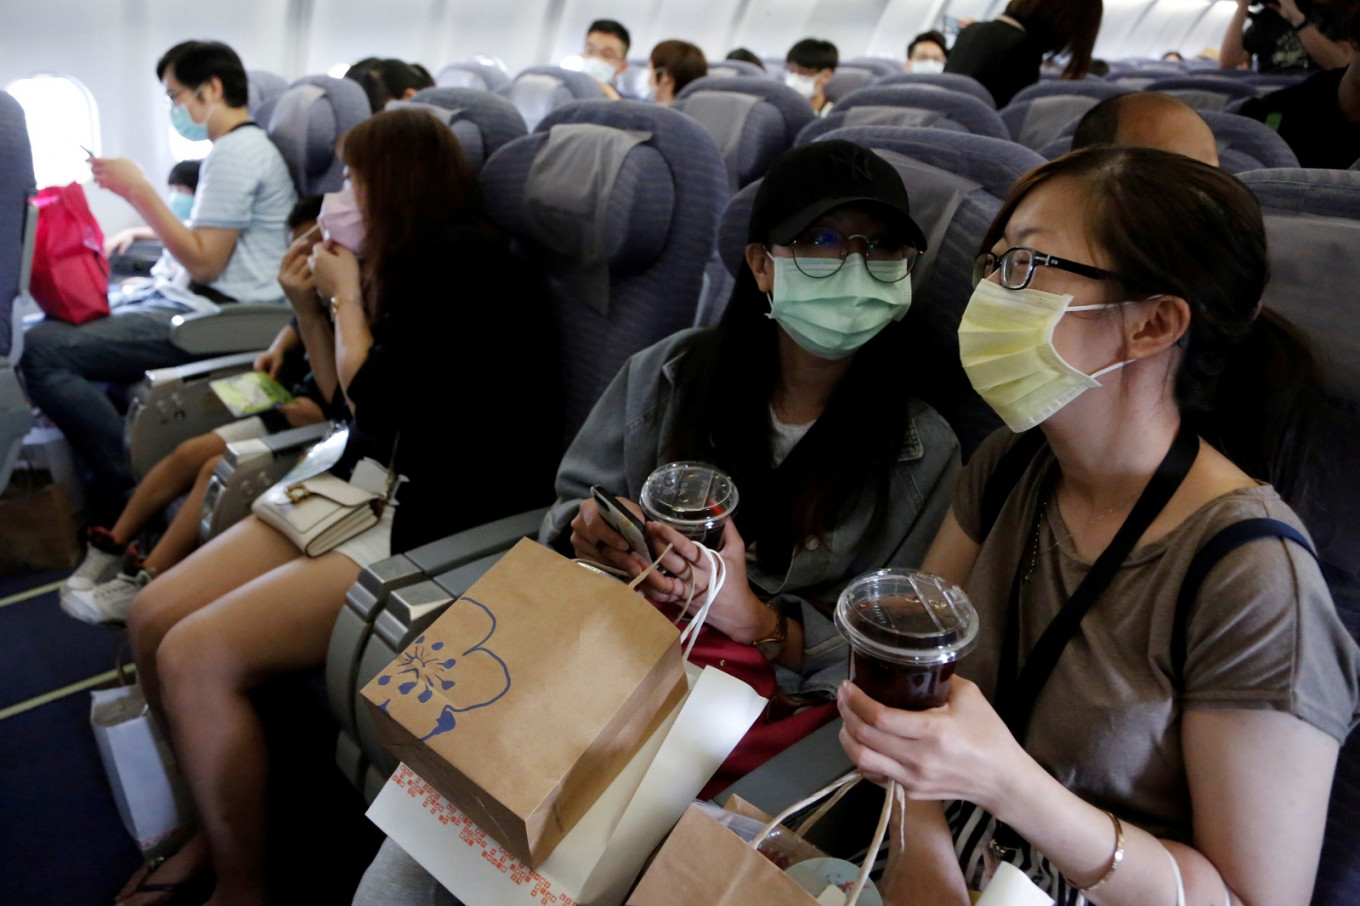 Taiwan: The fake flight for travel-starved tourists